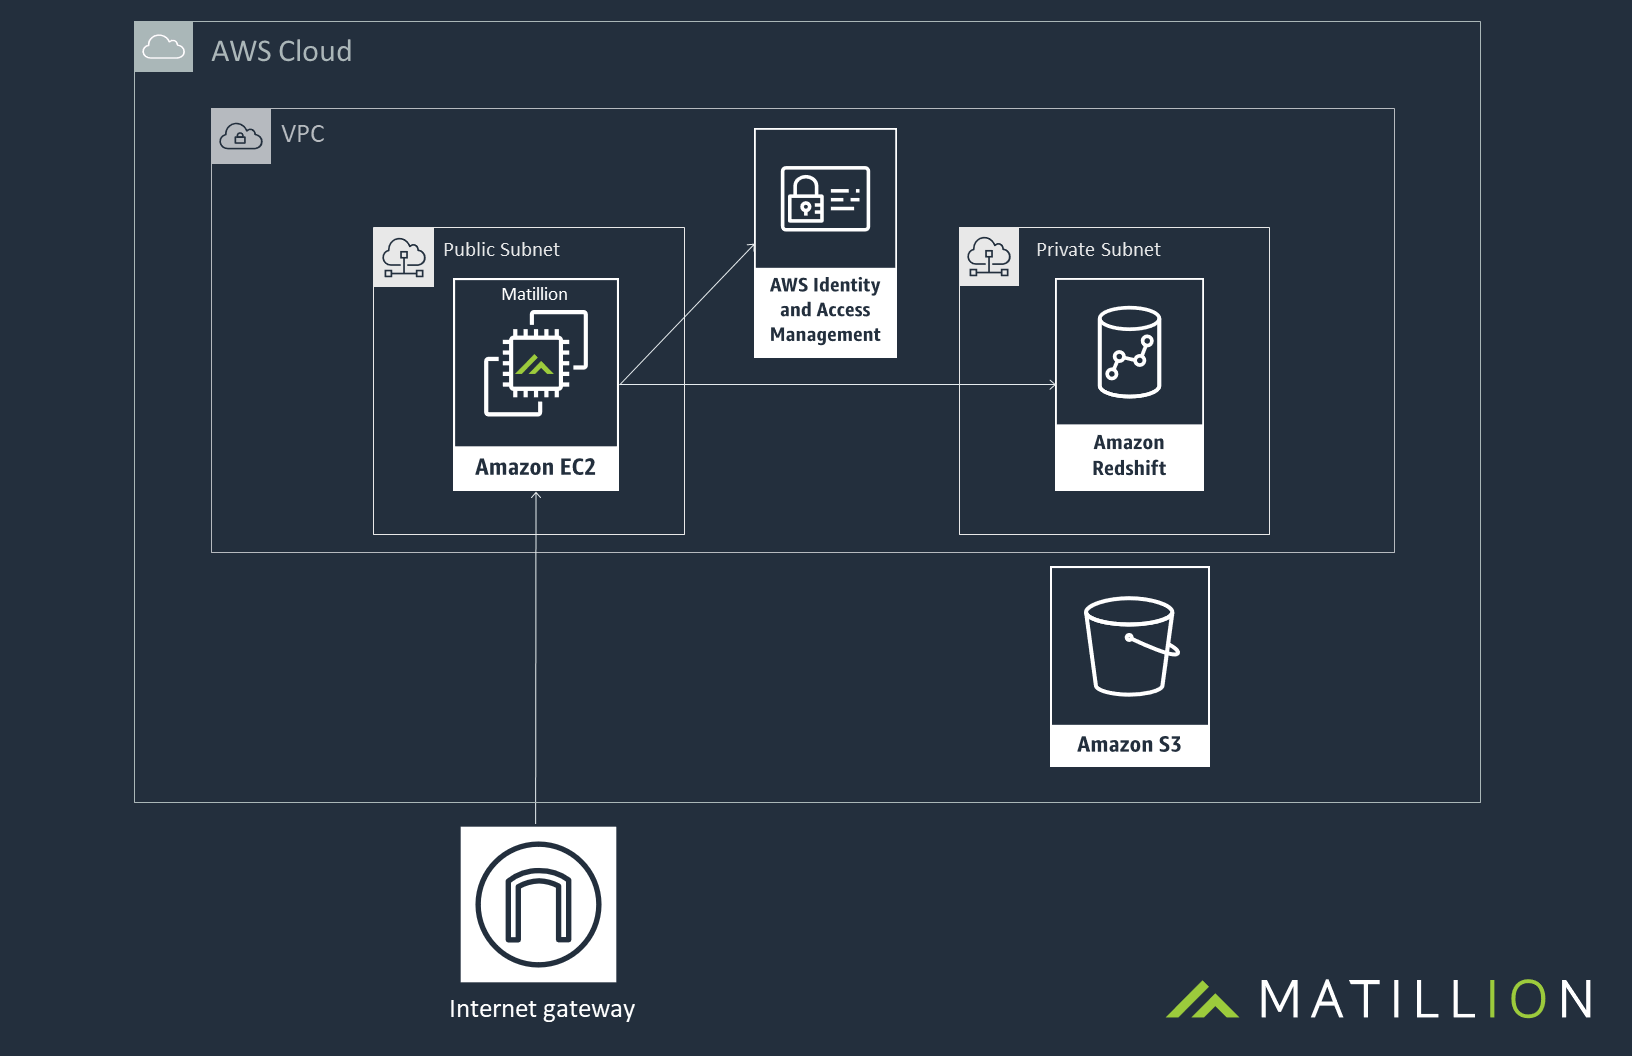 Matillion AWS Architecture Diagram - General Amazon Redshift